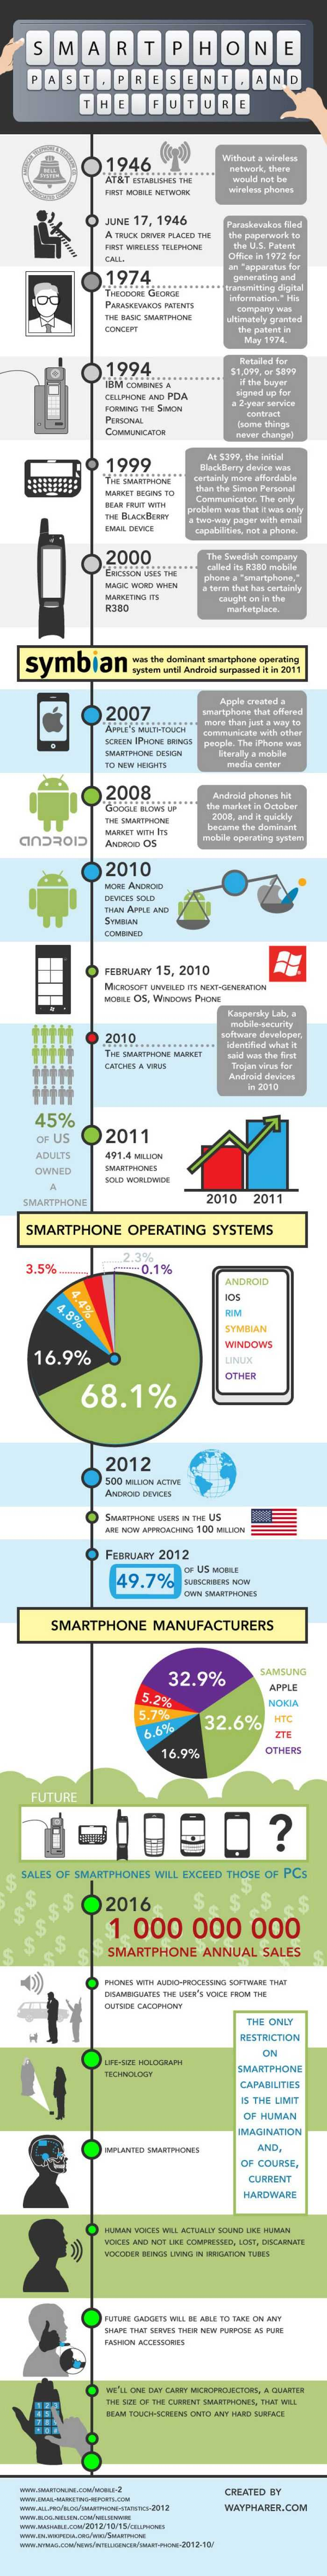 Smartphones- Past, Present, Future